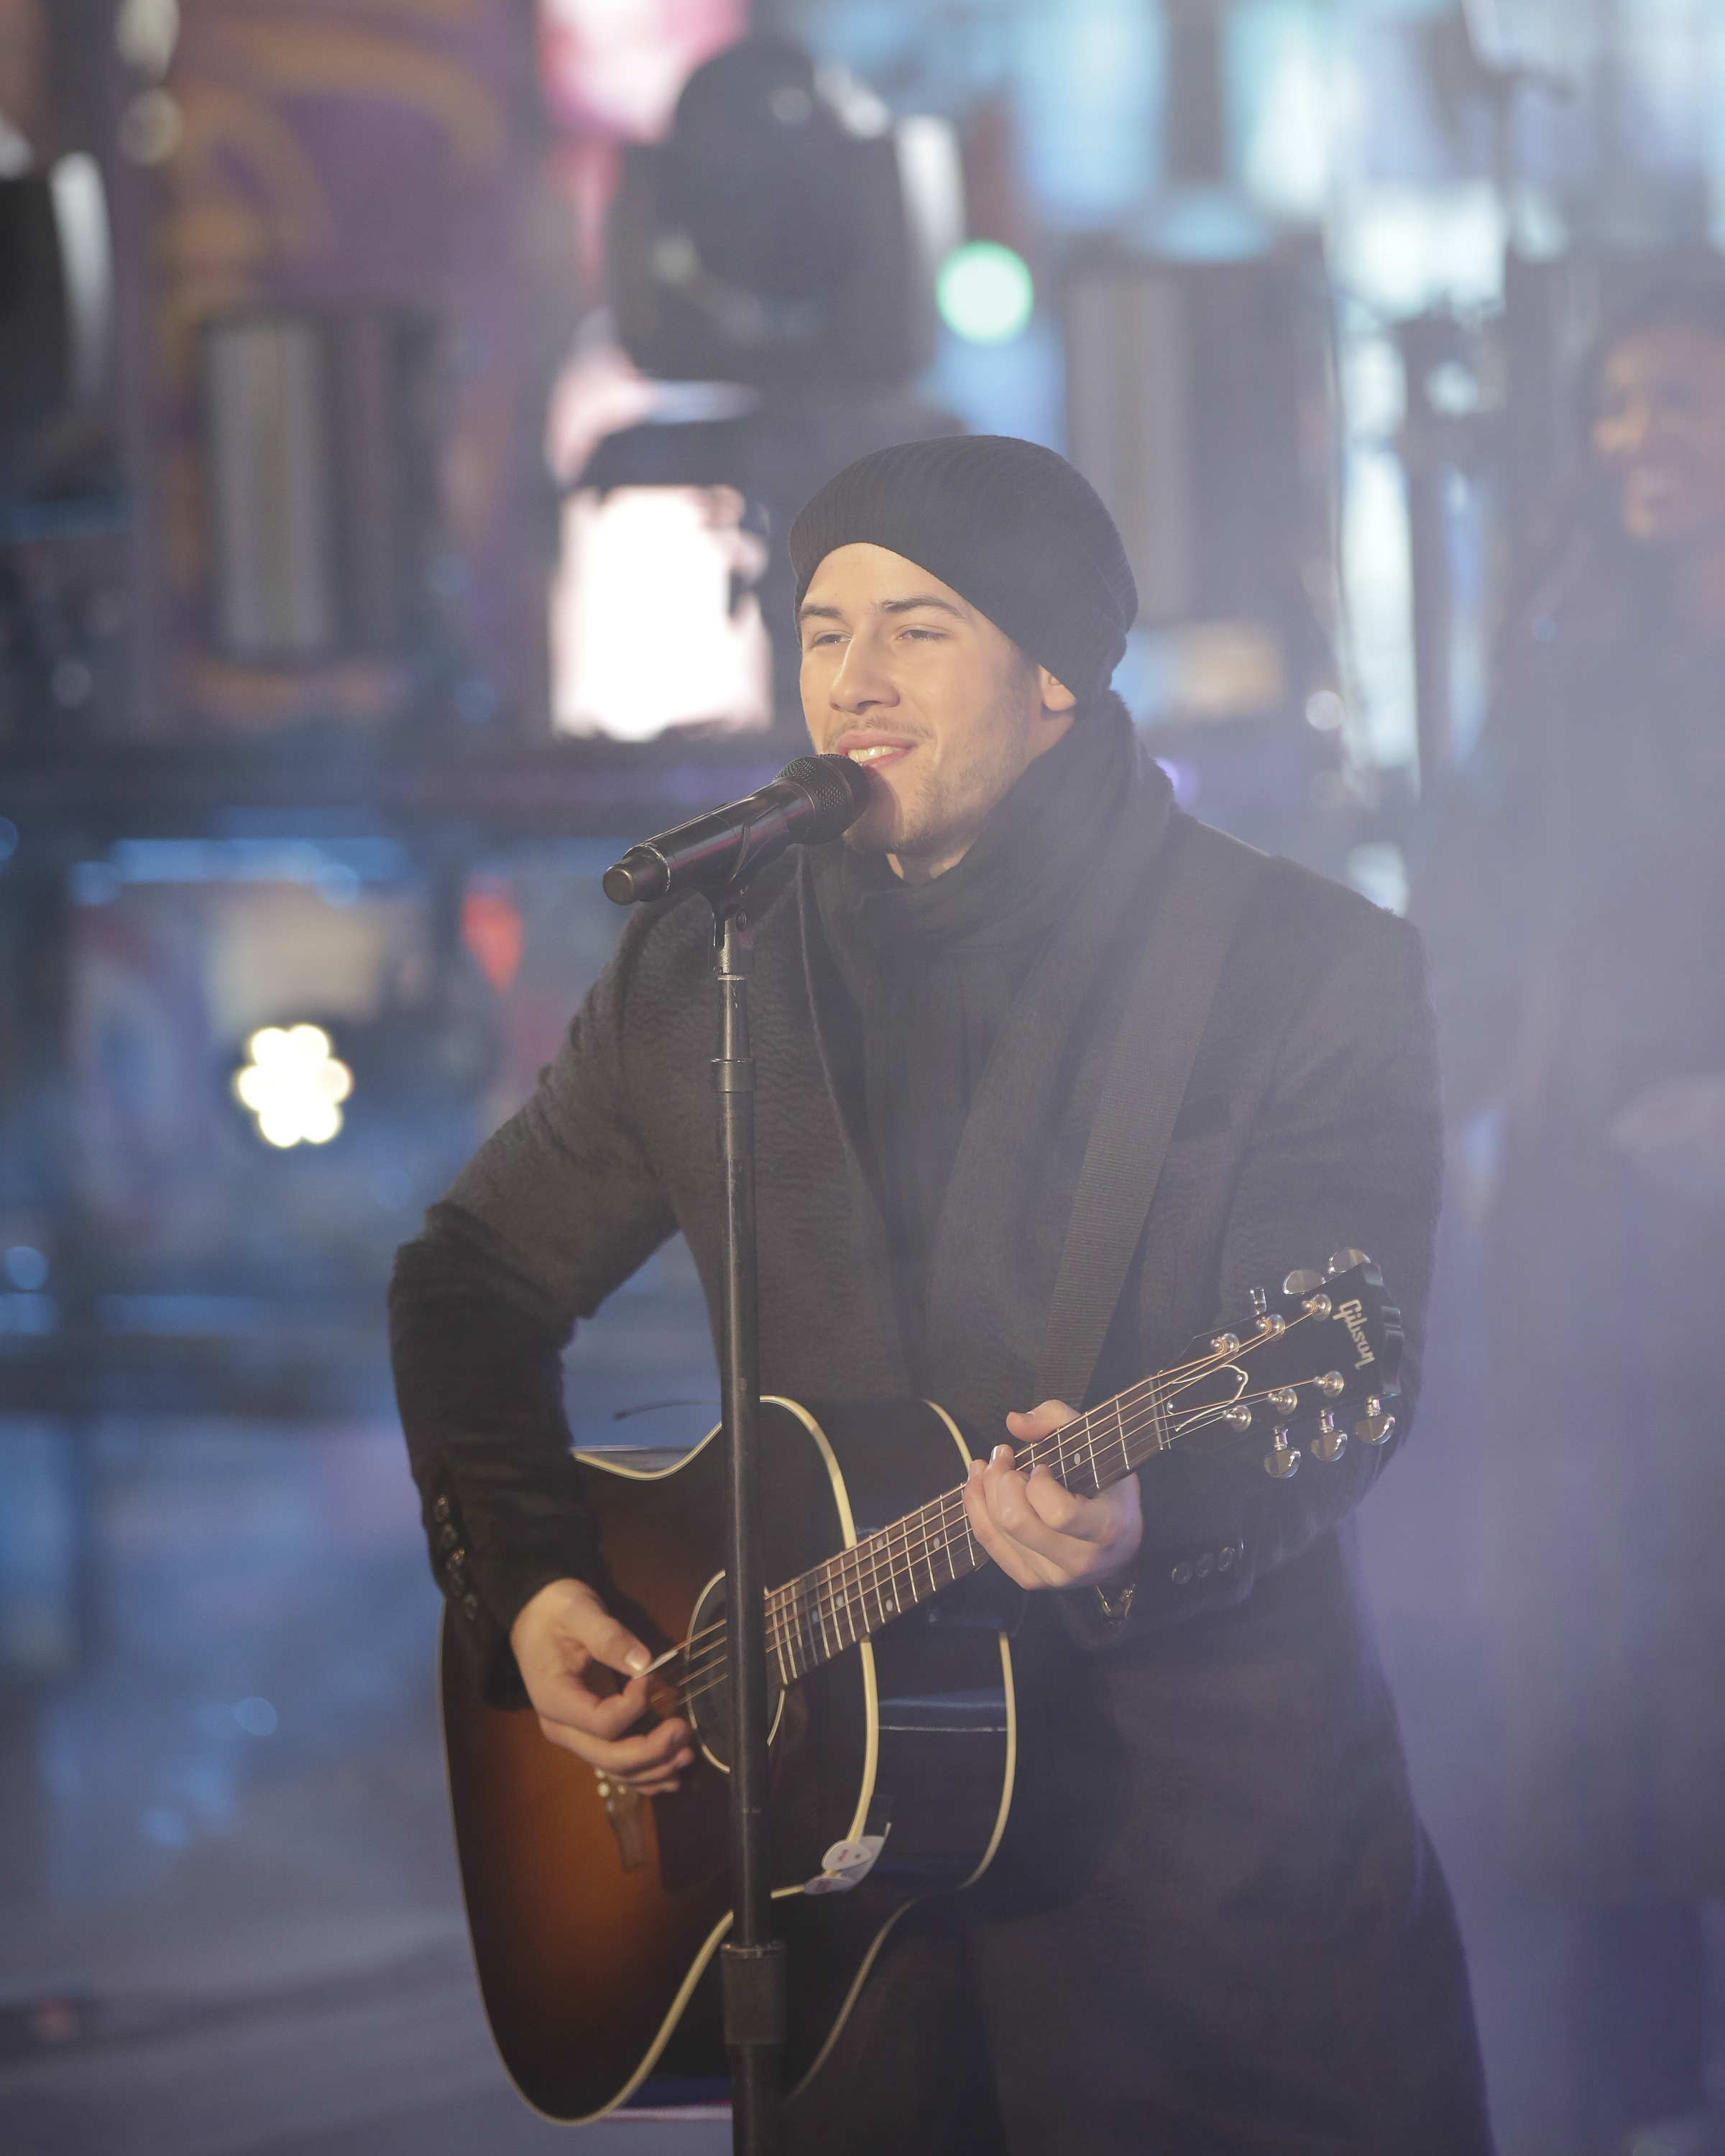 <div class='meta'><div class='origin-logo' data-origin='AP'></div><span class='caption-text' data-credit='Brent N. Clarke/Invision/AP'>Nick Jonas performs on stage at the New Year's Eve celebration in Times Square on Sunday, Dec. 31, 2017, in New York. (Photo by Brent N. Clarke/Invision/AP)</span></div>